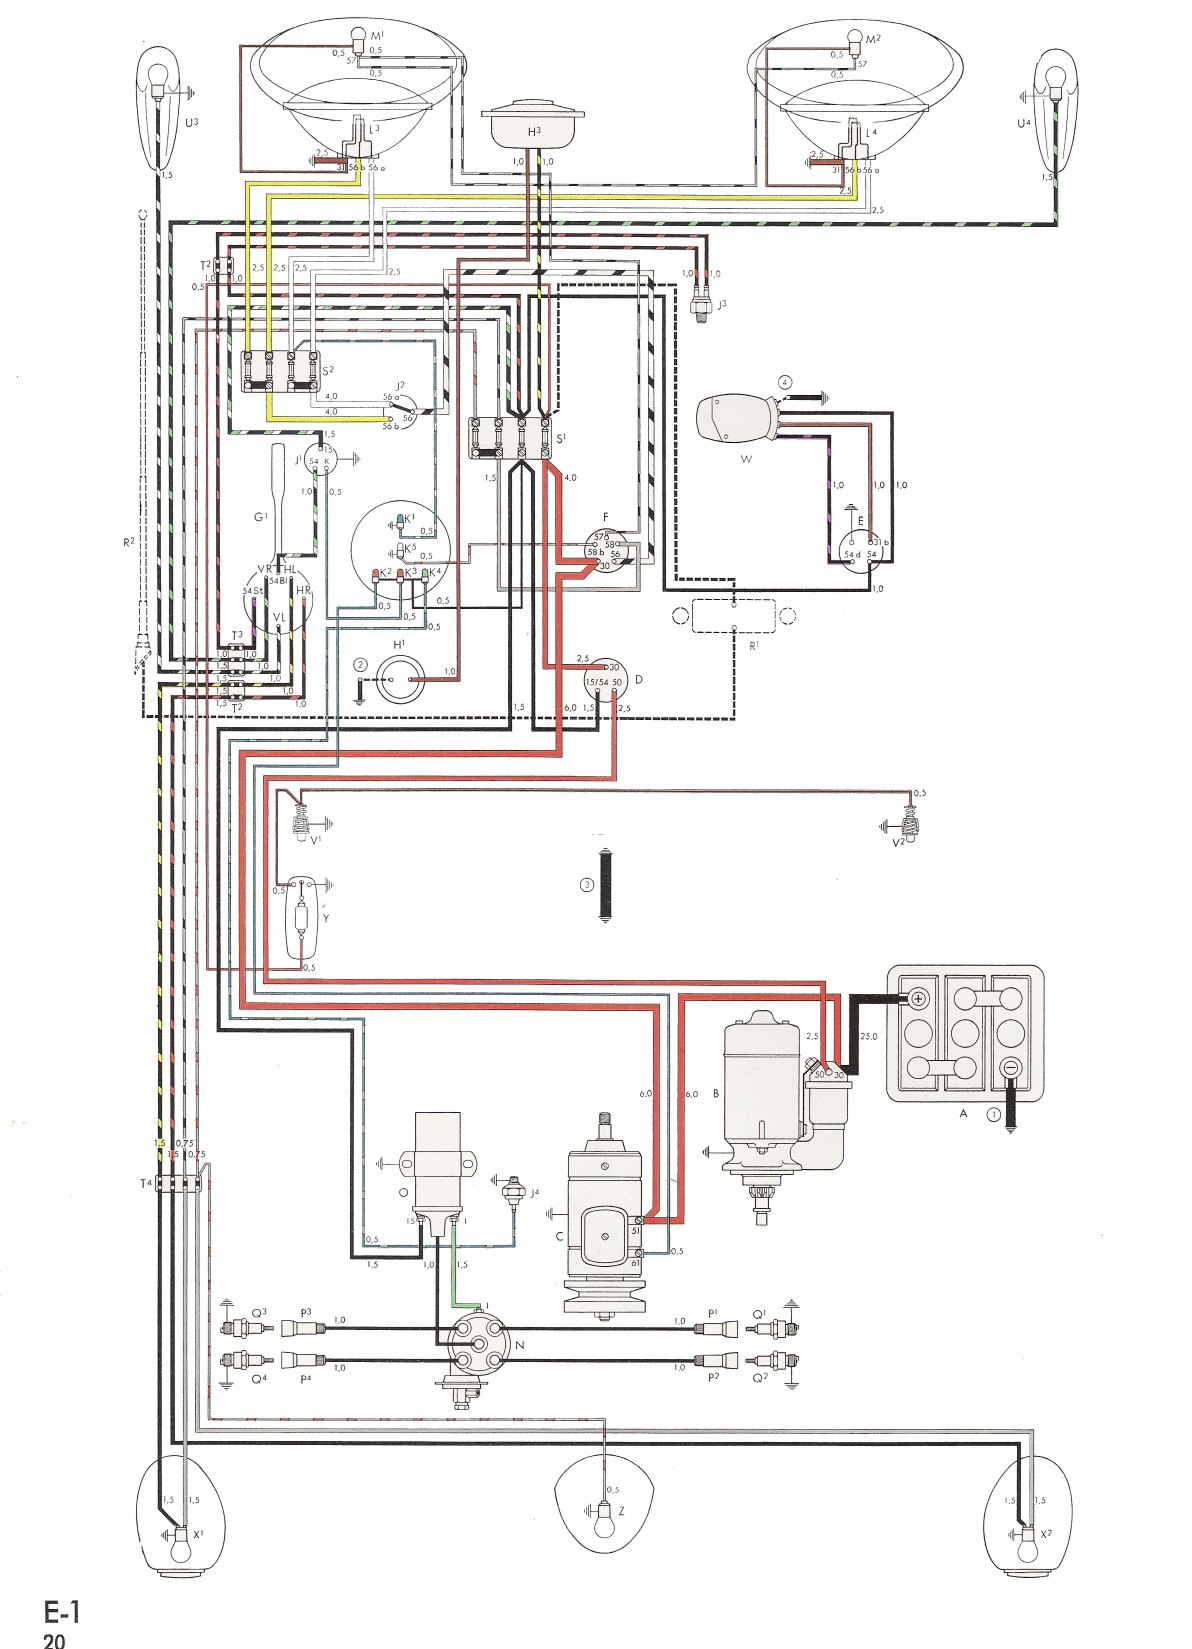 hight resolution of fuse box diagram for 1973 bug wiring diagram repair guides1973 super beetle fuse box diagram wiring